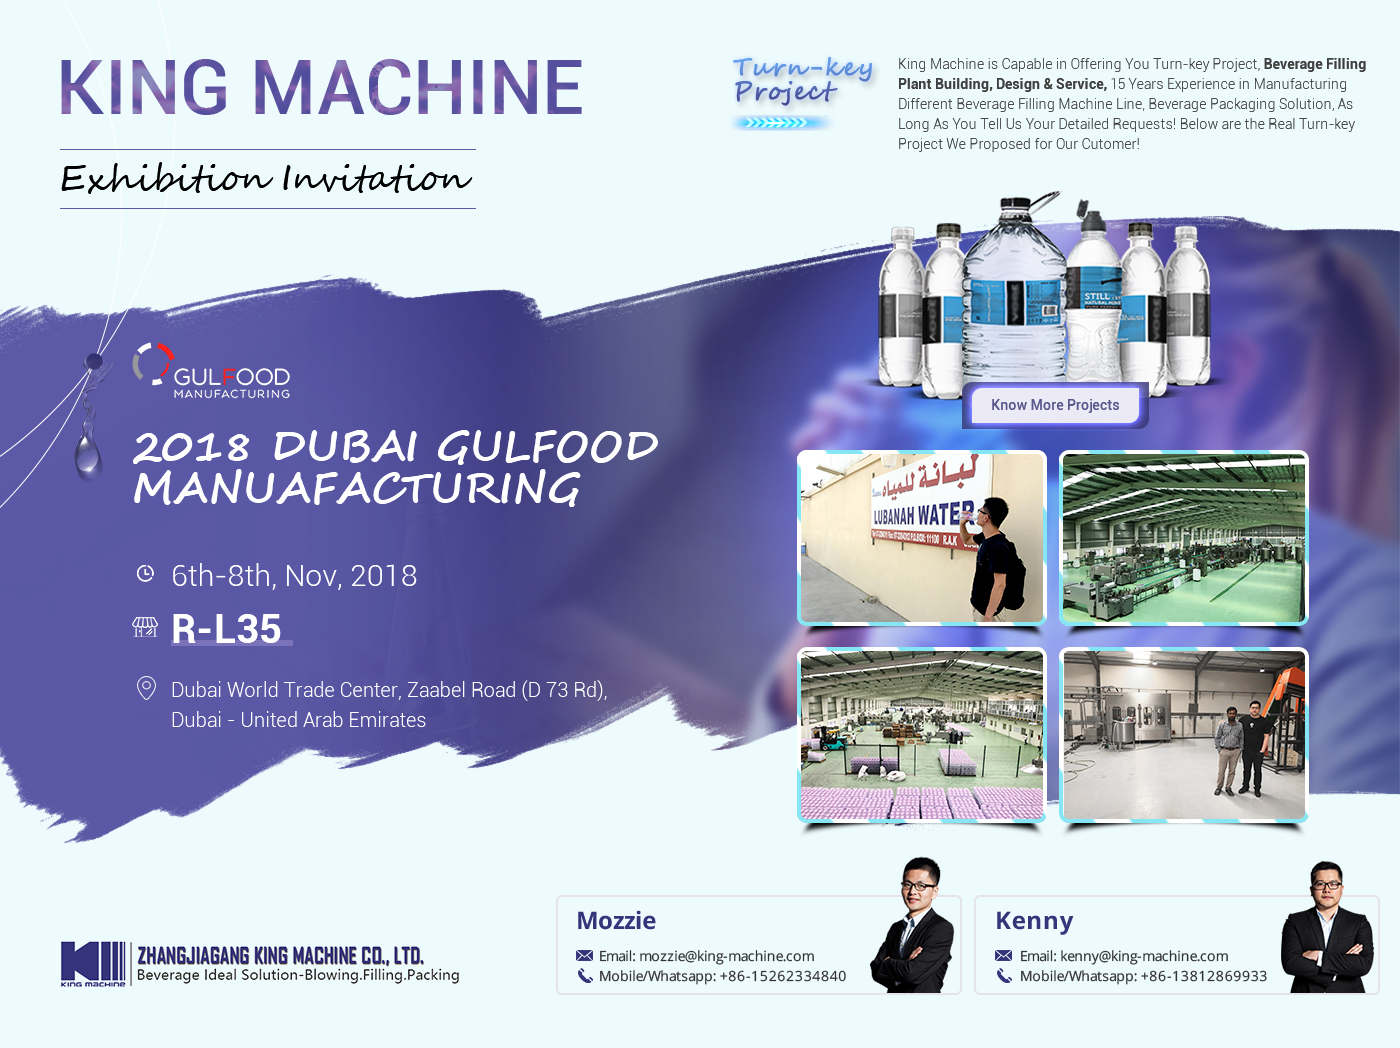 KING MACHINE IN DUBAI GULFOOD MANUAFACTURING 2018